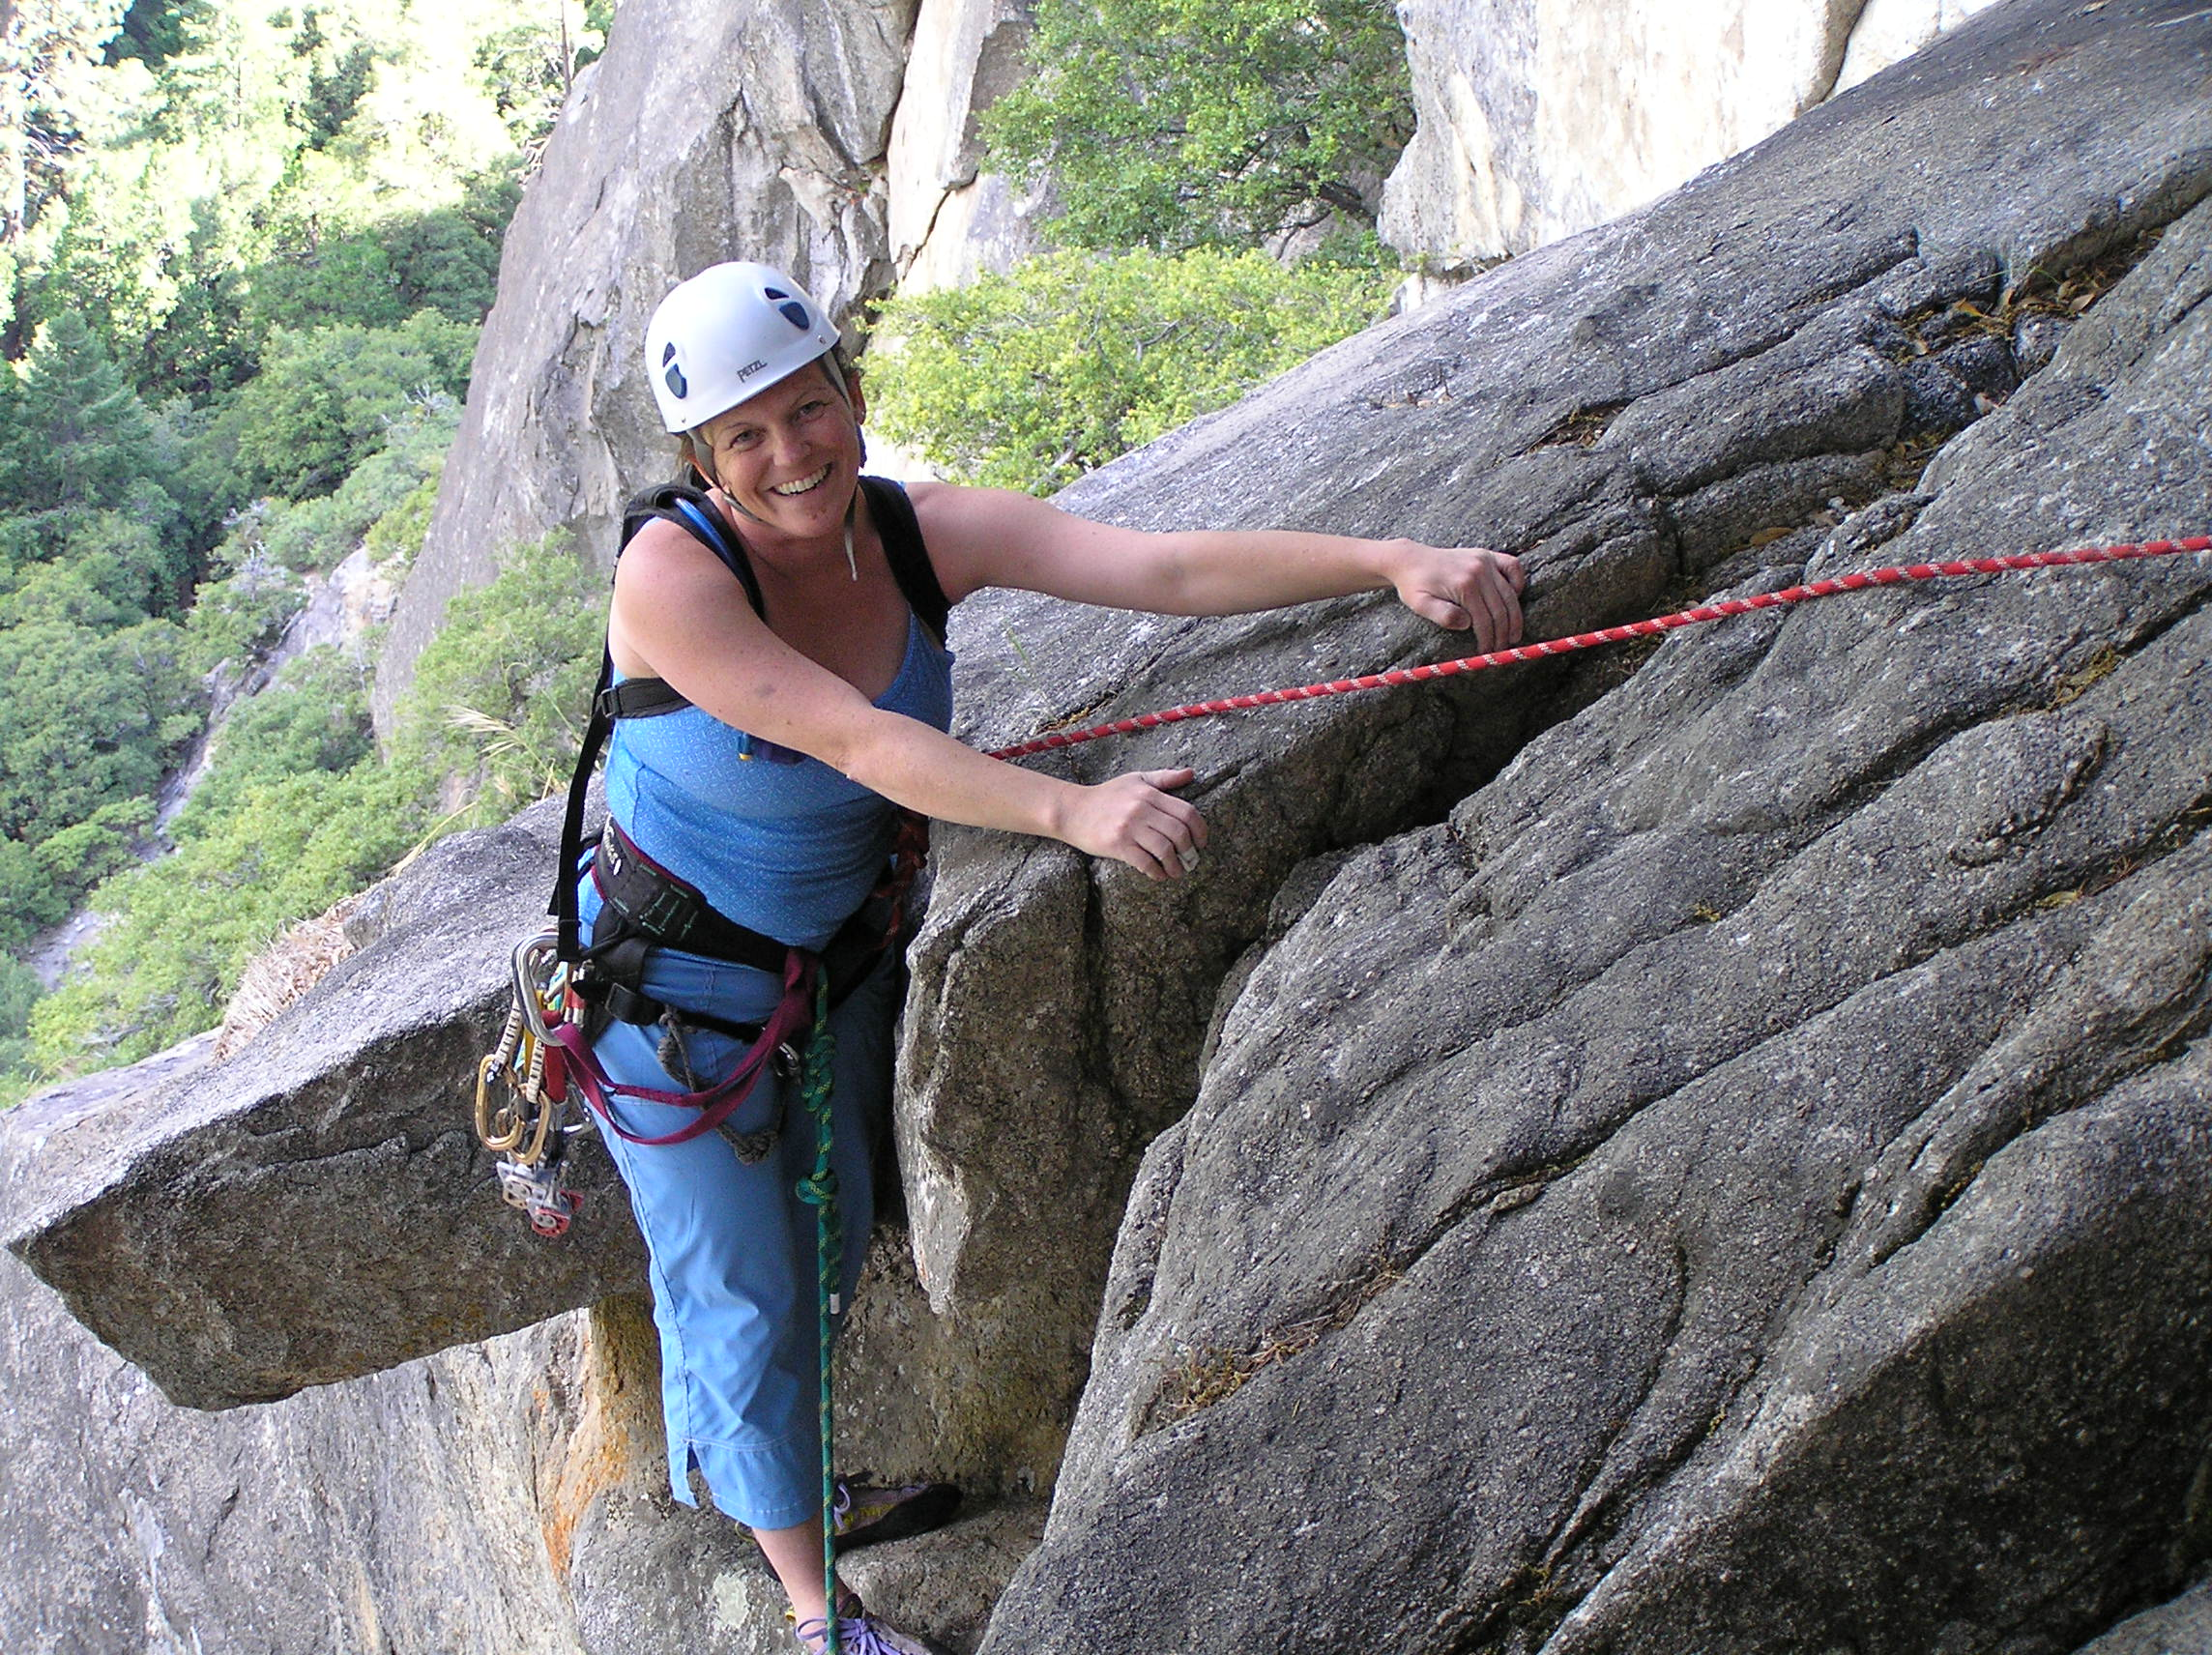 Janine on Hanging Teeth, Yosemite